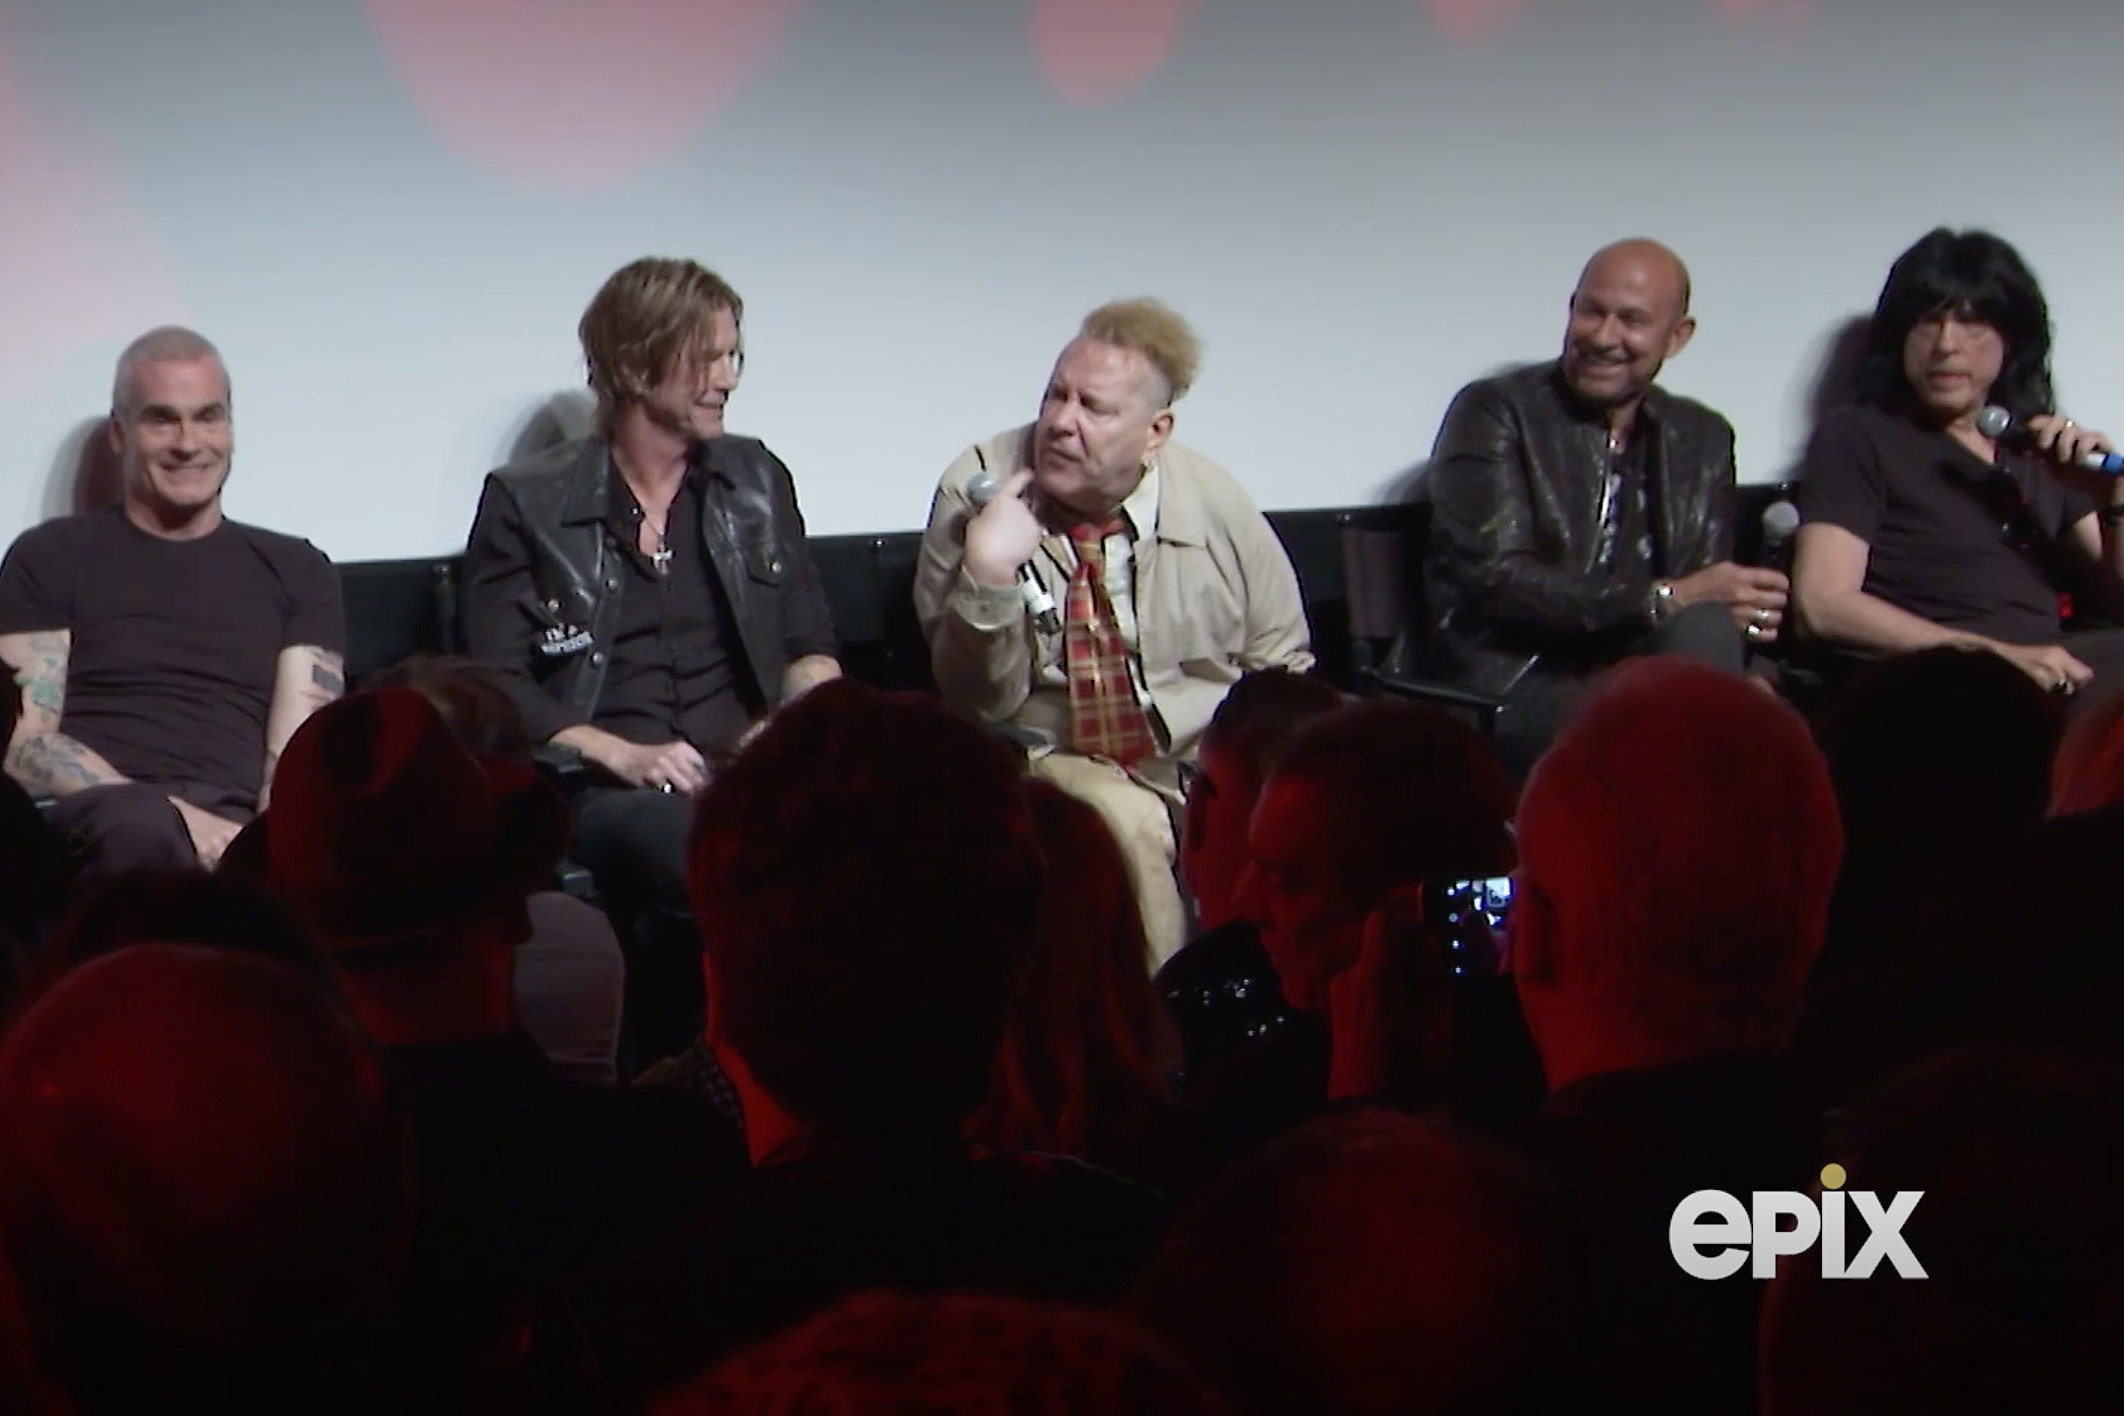 'Punk' panel with Johnny Rotten, Henry Rollins, Marky Ramone and more